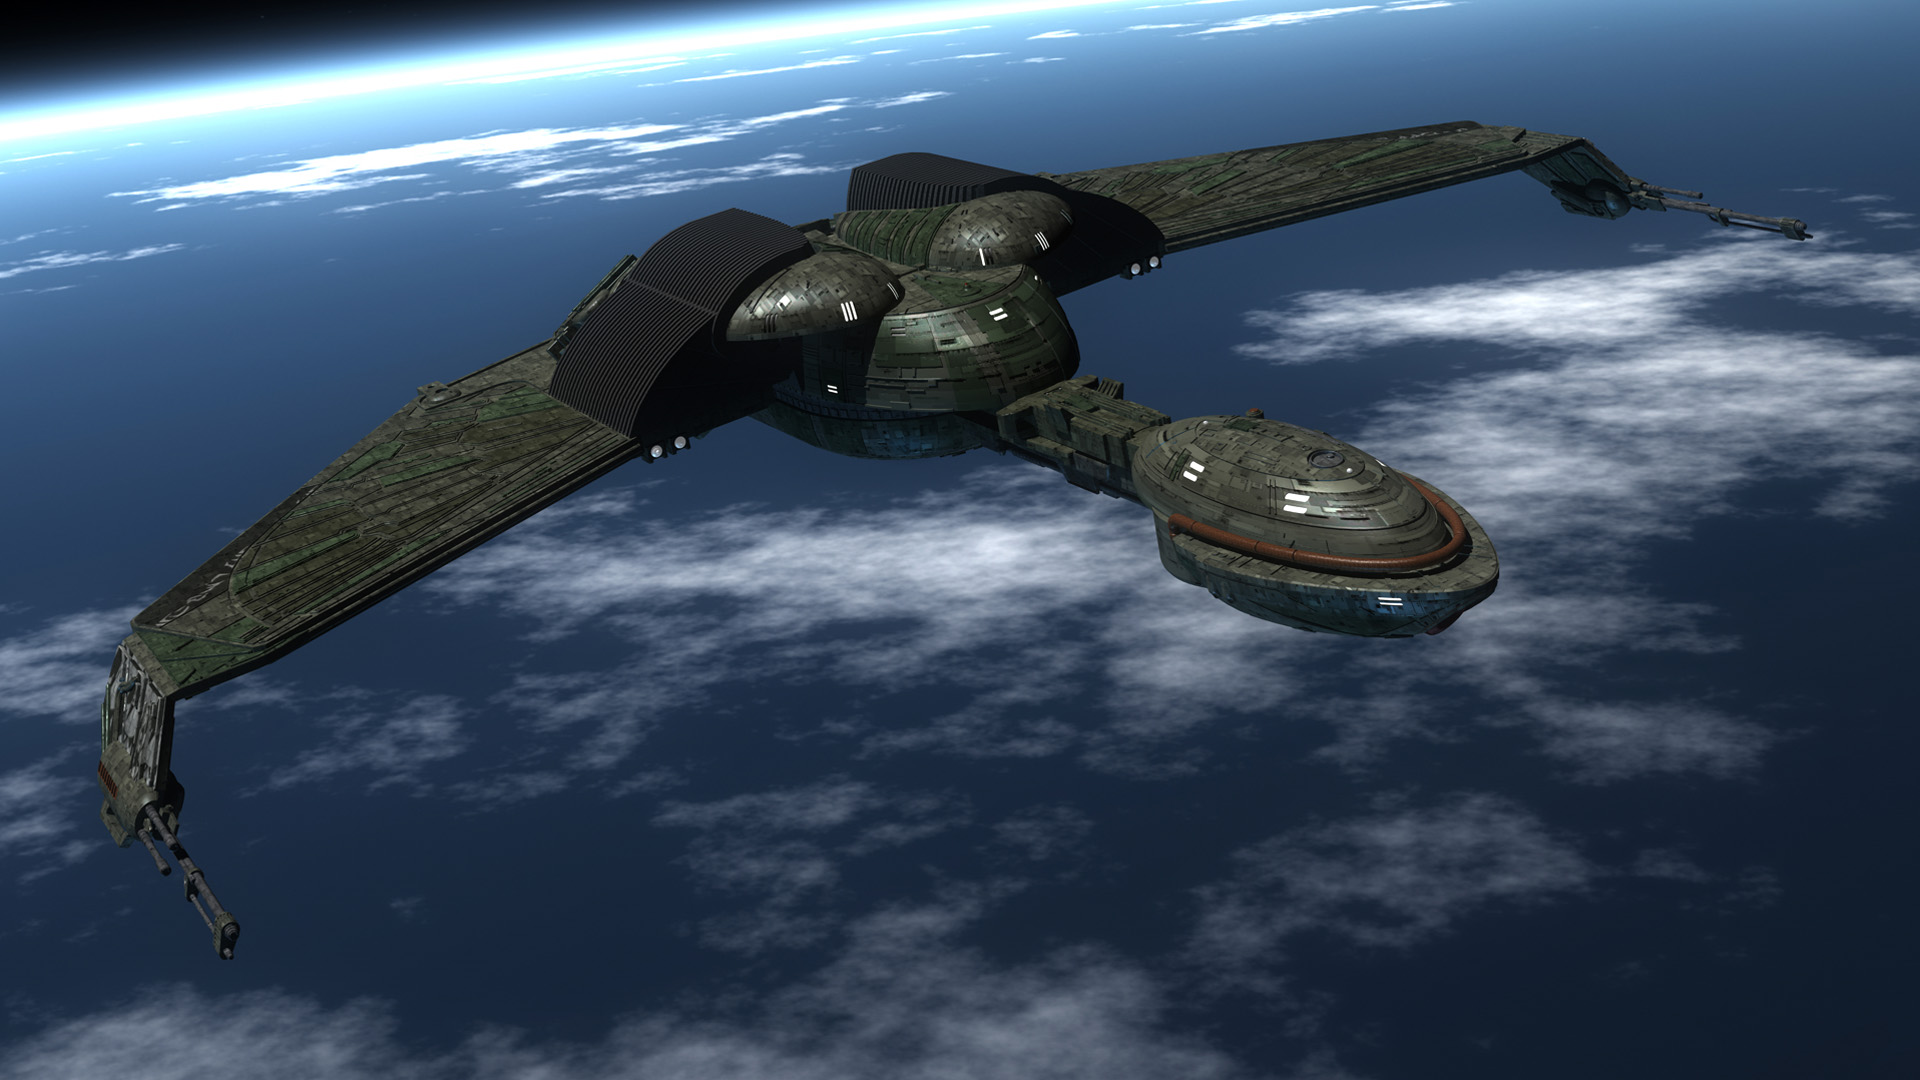 klingon-bird-of-prey-1920x1080.jpg